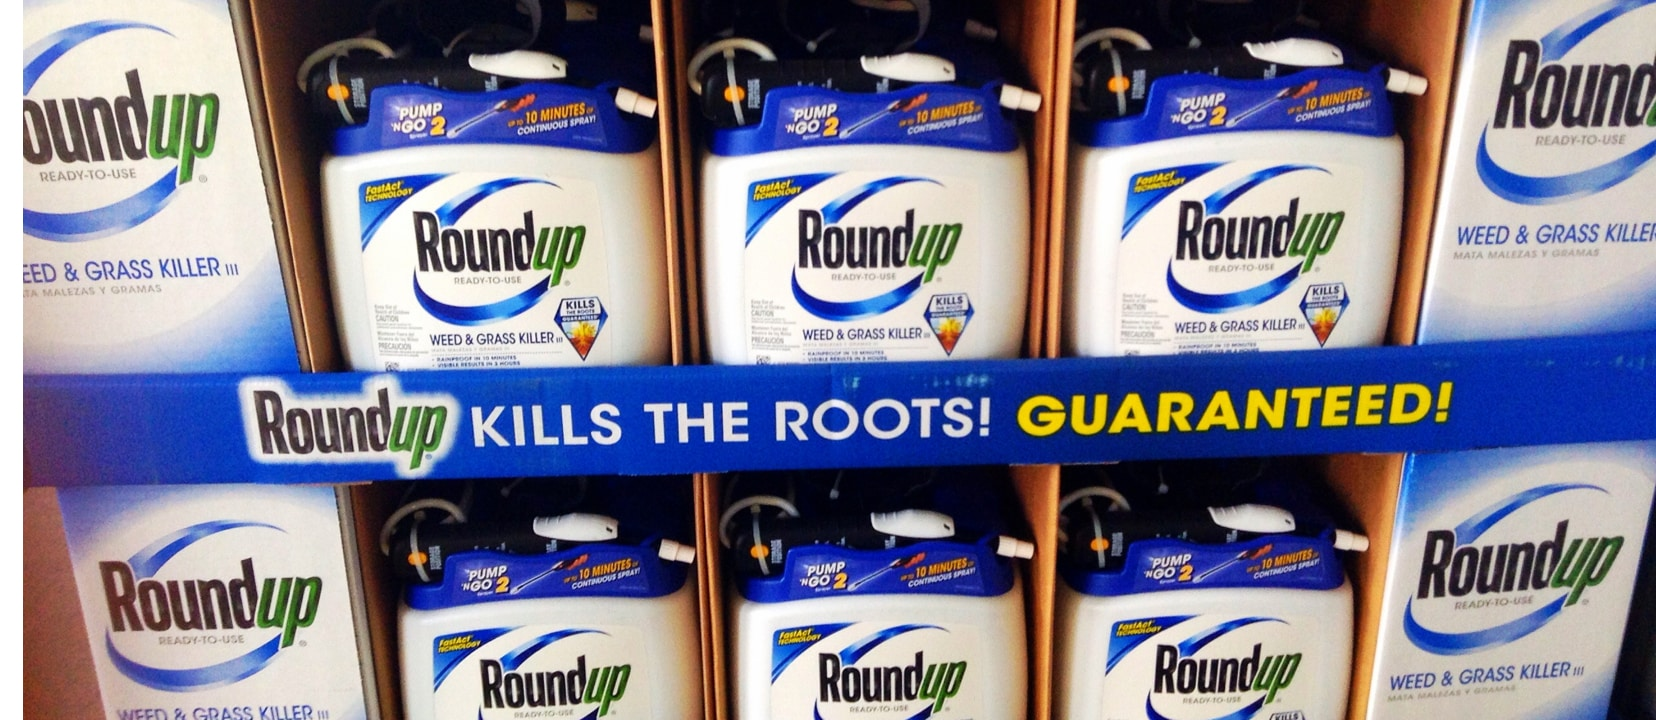 Is Monsanto's Roundup Pesticide Glyphosate Safe?